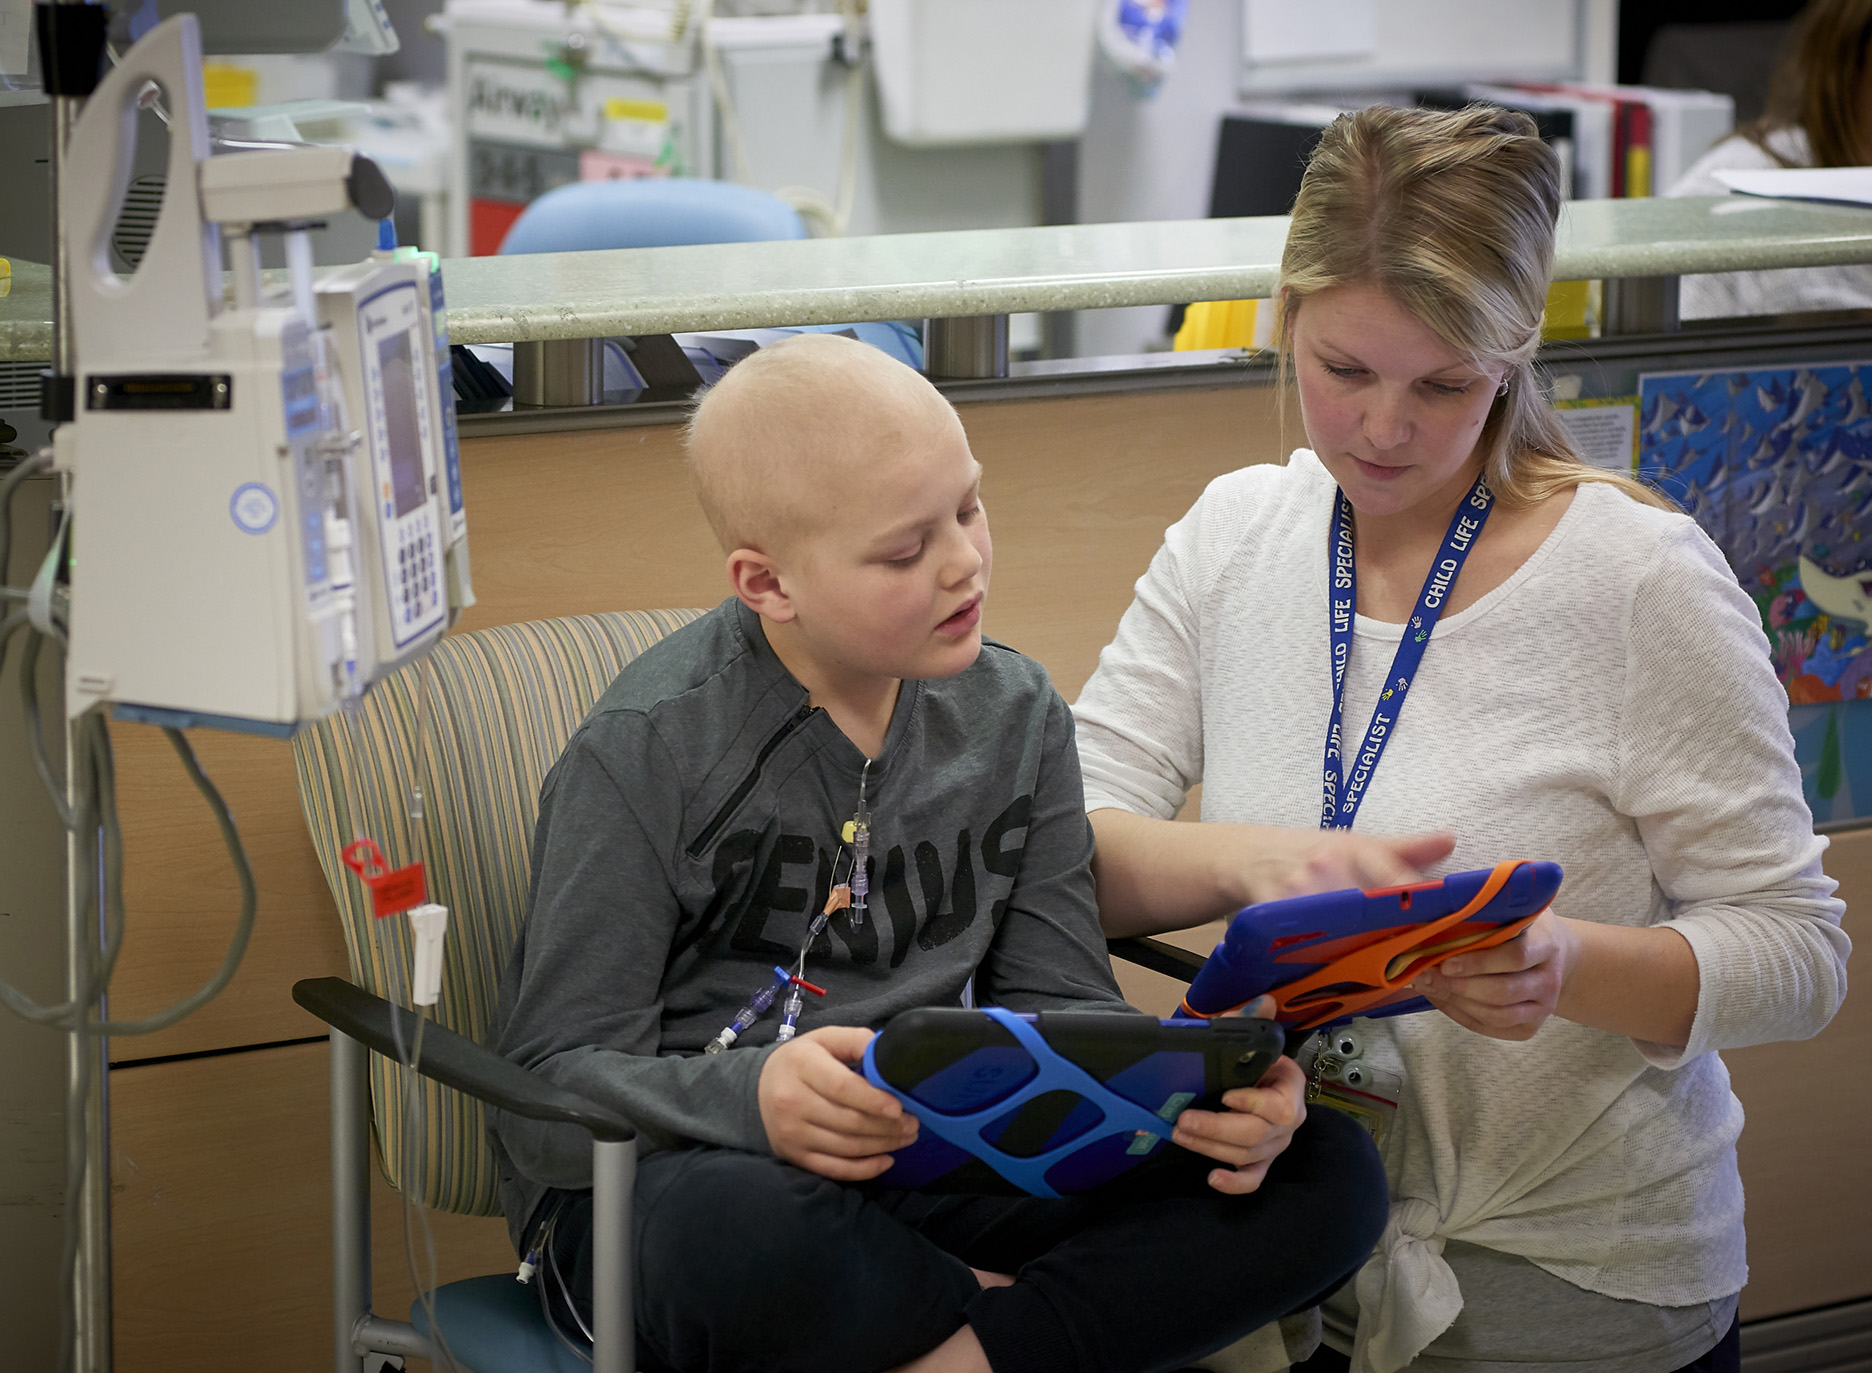 A child patient reads with a caregiver